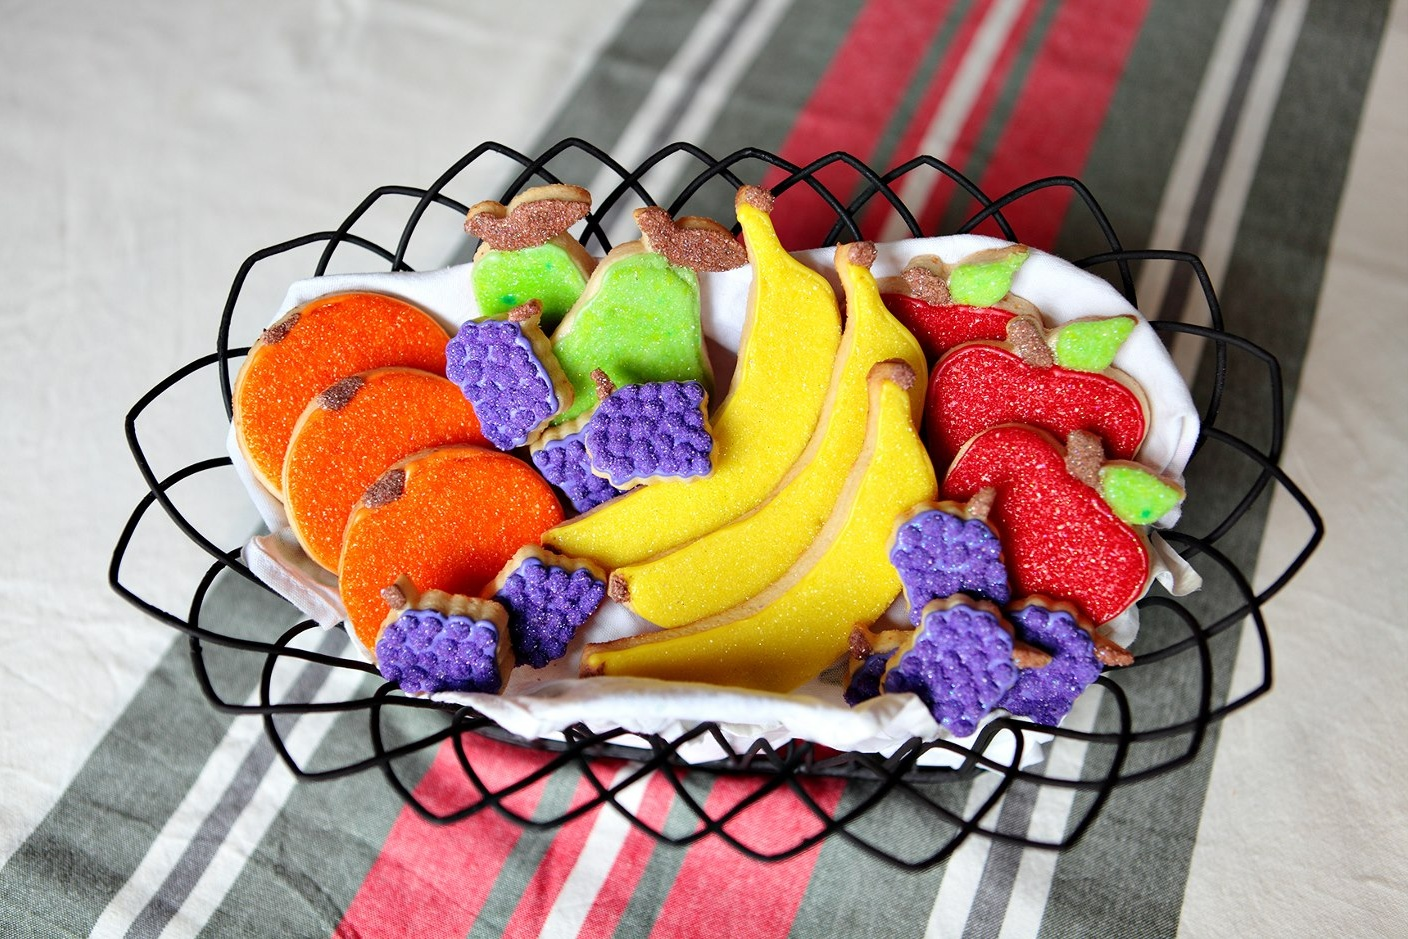 fruit-basket-cookies.jpg